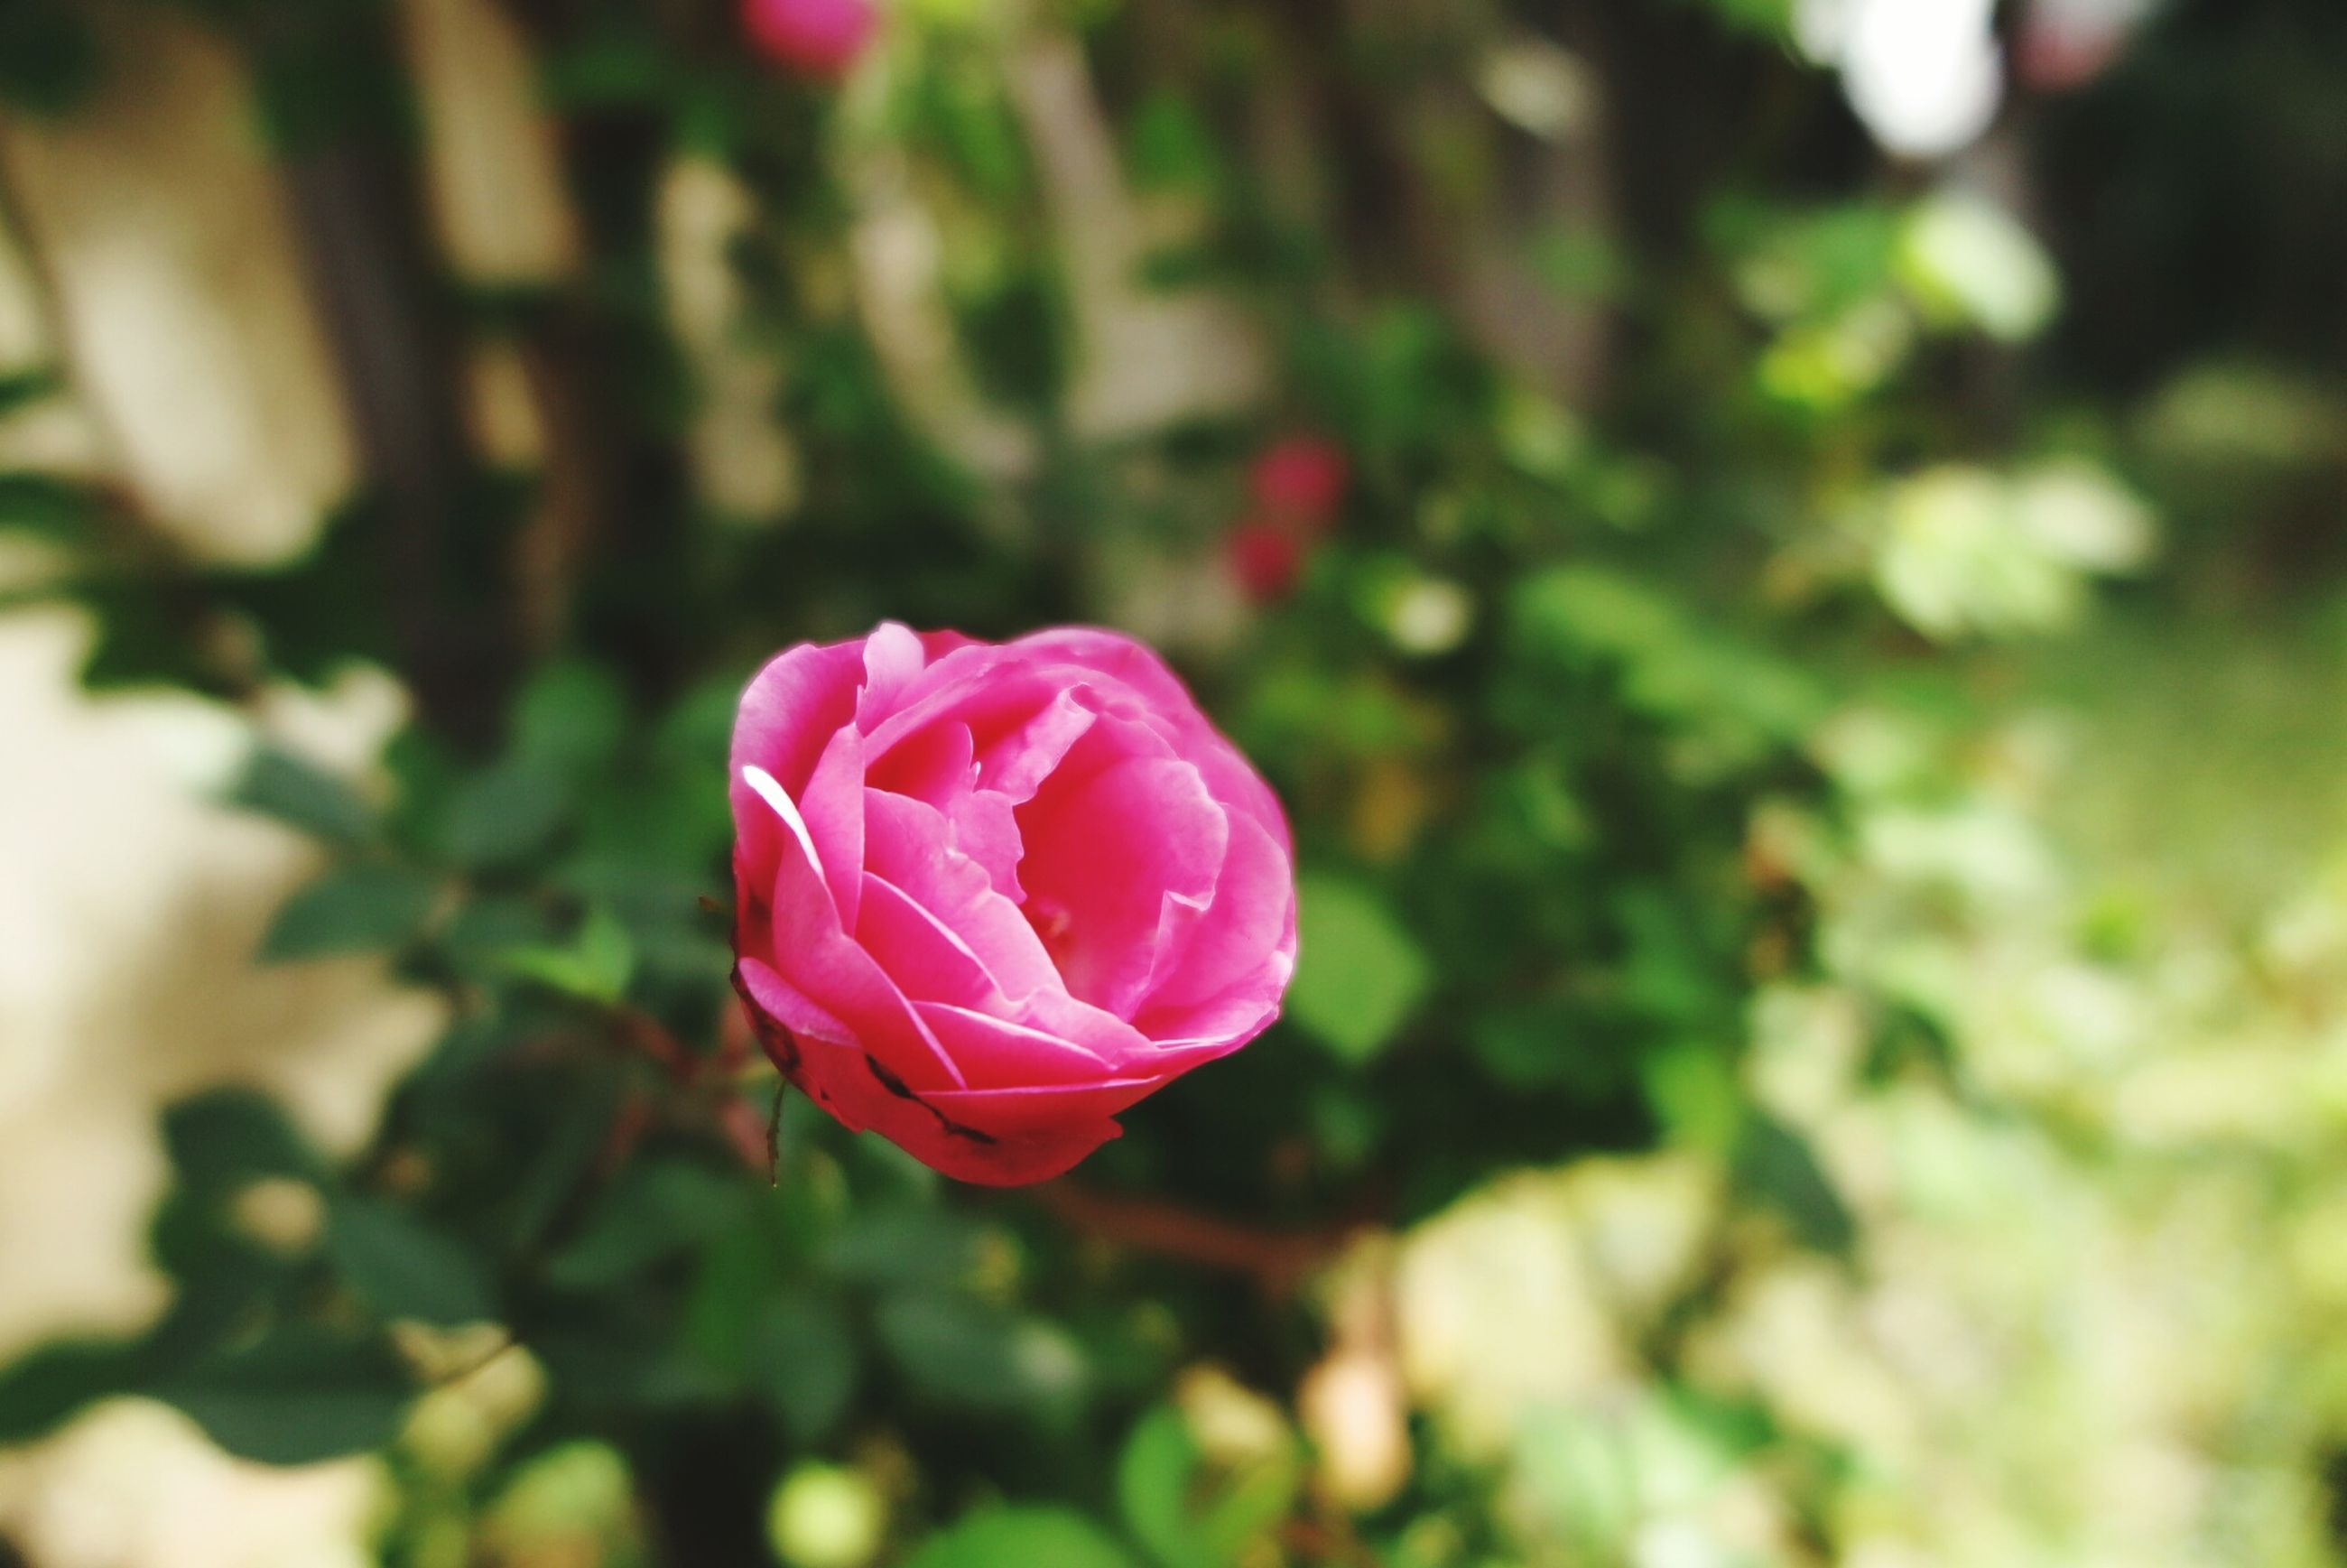 flower, petal, flower head, fragility, freshness, rose - flower, focus on foreground, pink color, growth, beauty in nature, close-up, single flower, blooming, nature, red, plant, in bloom, selective focus, rose, pink